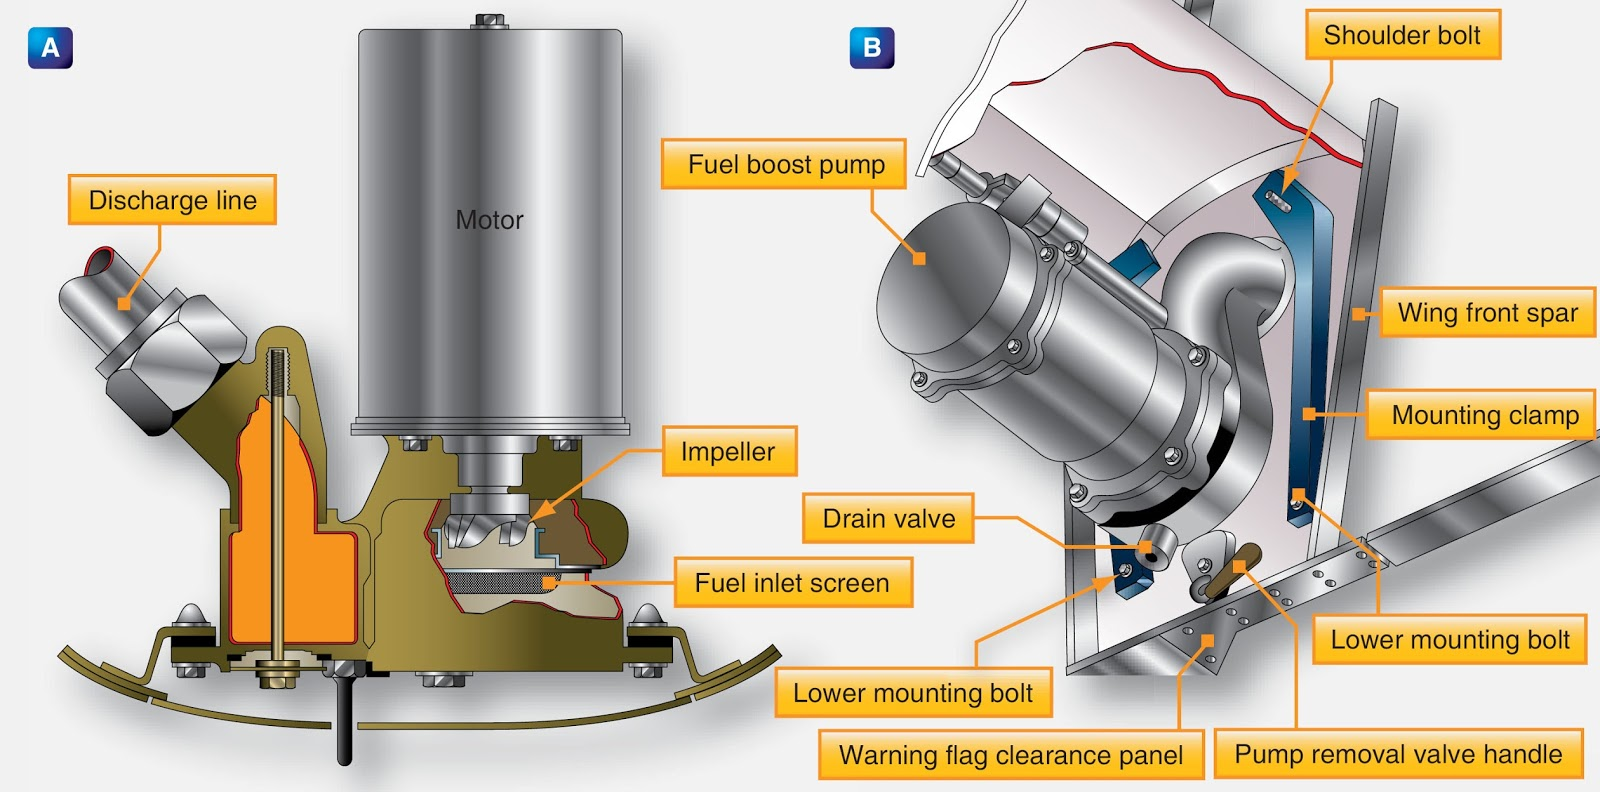 Aeronautical Guide Types Of Aircraft Fuel Pumps Plumbing Diagram Below Showing The Utilisation An Enginedriven A Centrifugal Boost Pump Can Be Submersed In Tank Or Attached To Outside With Inlet And Outlet Extending